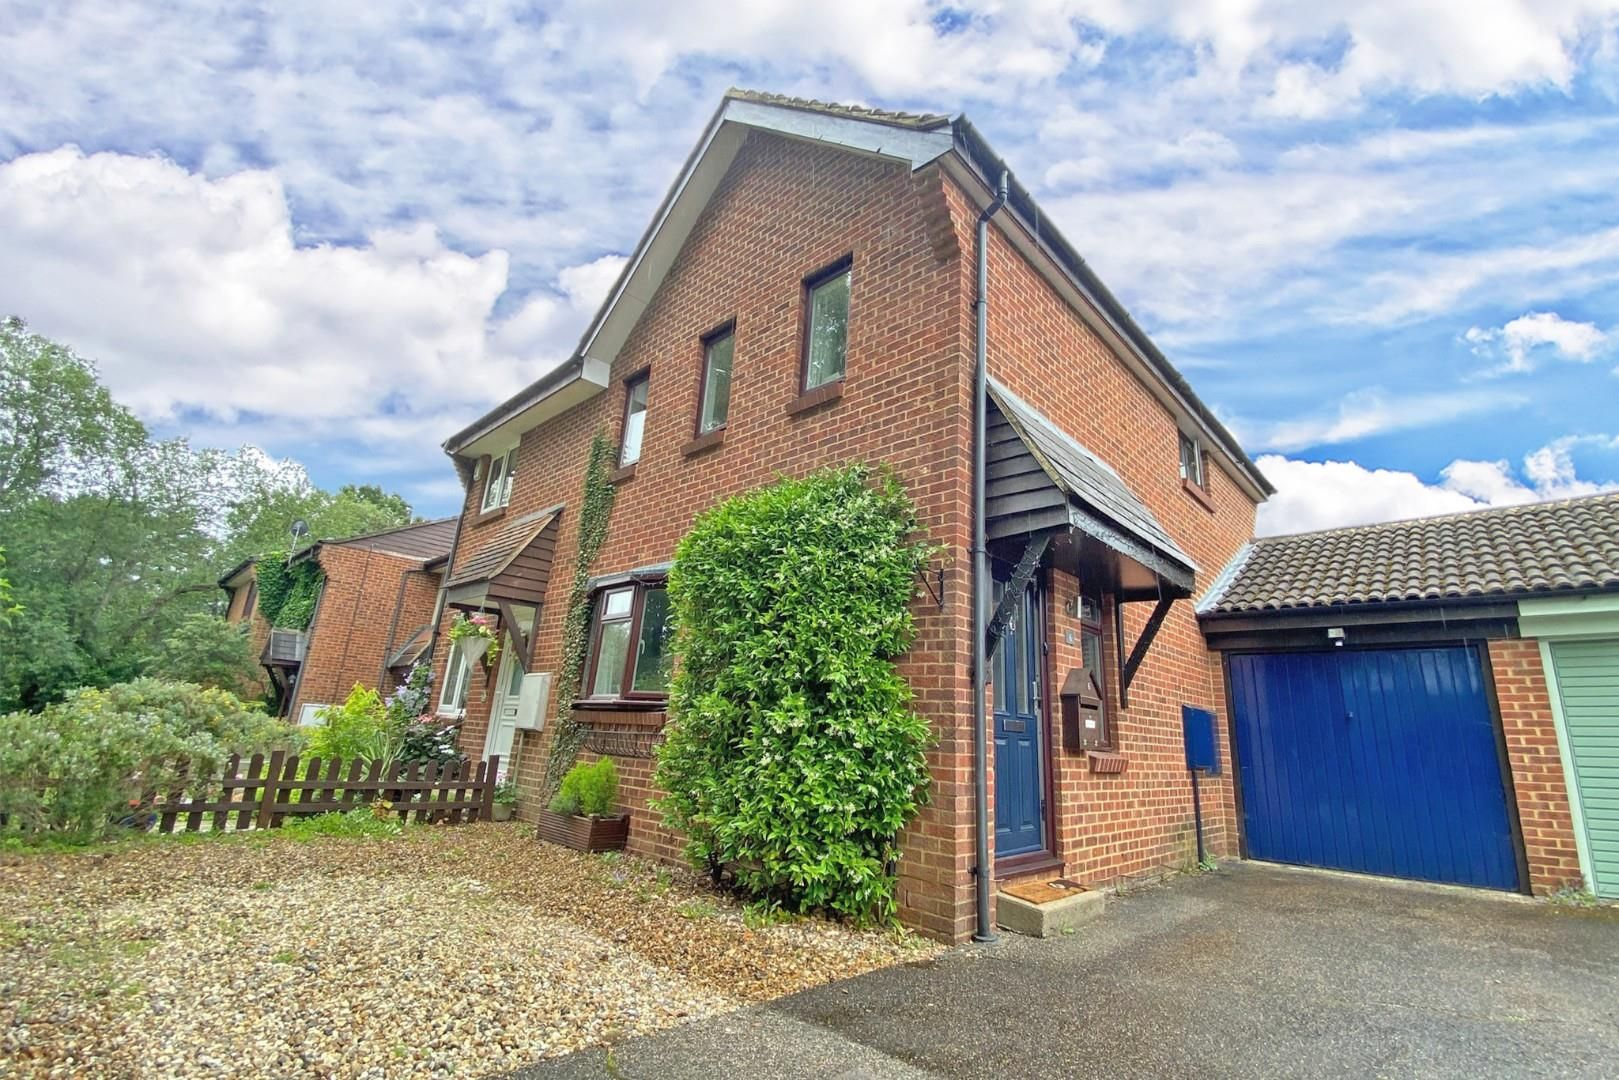 3 bed end of terrace for sale, RG12